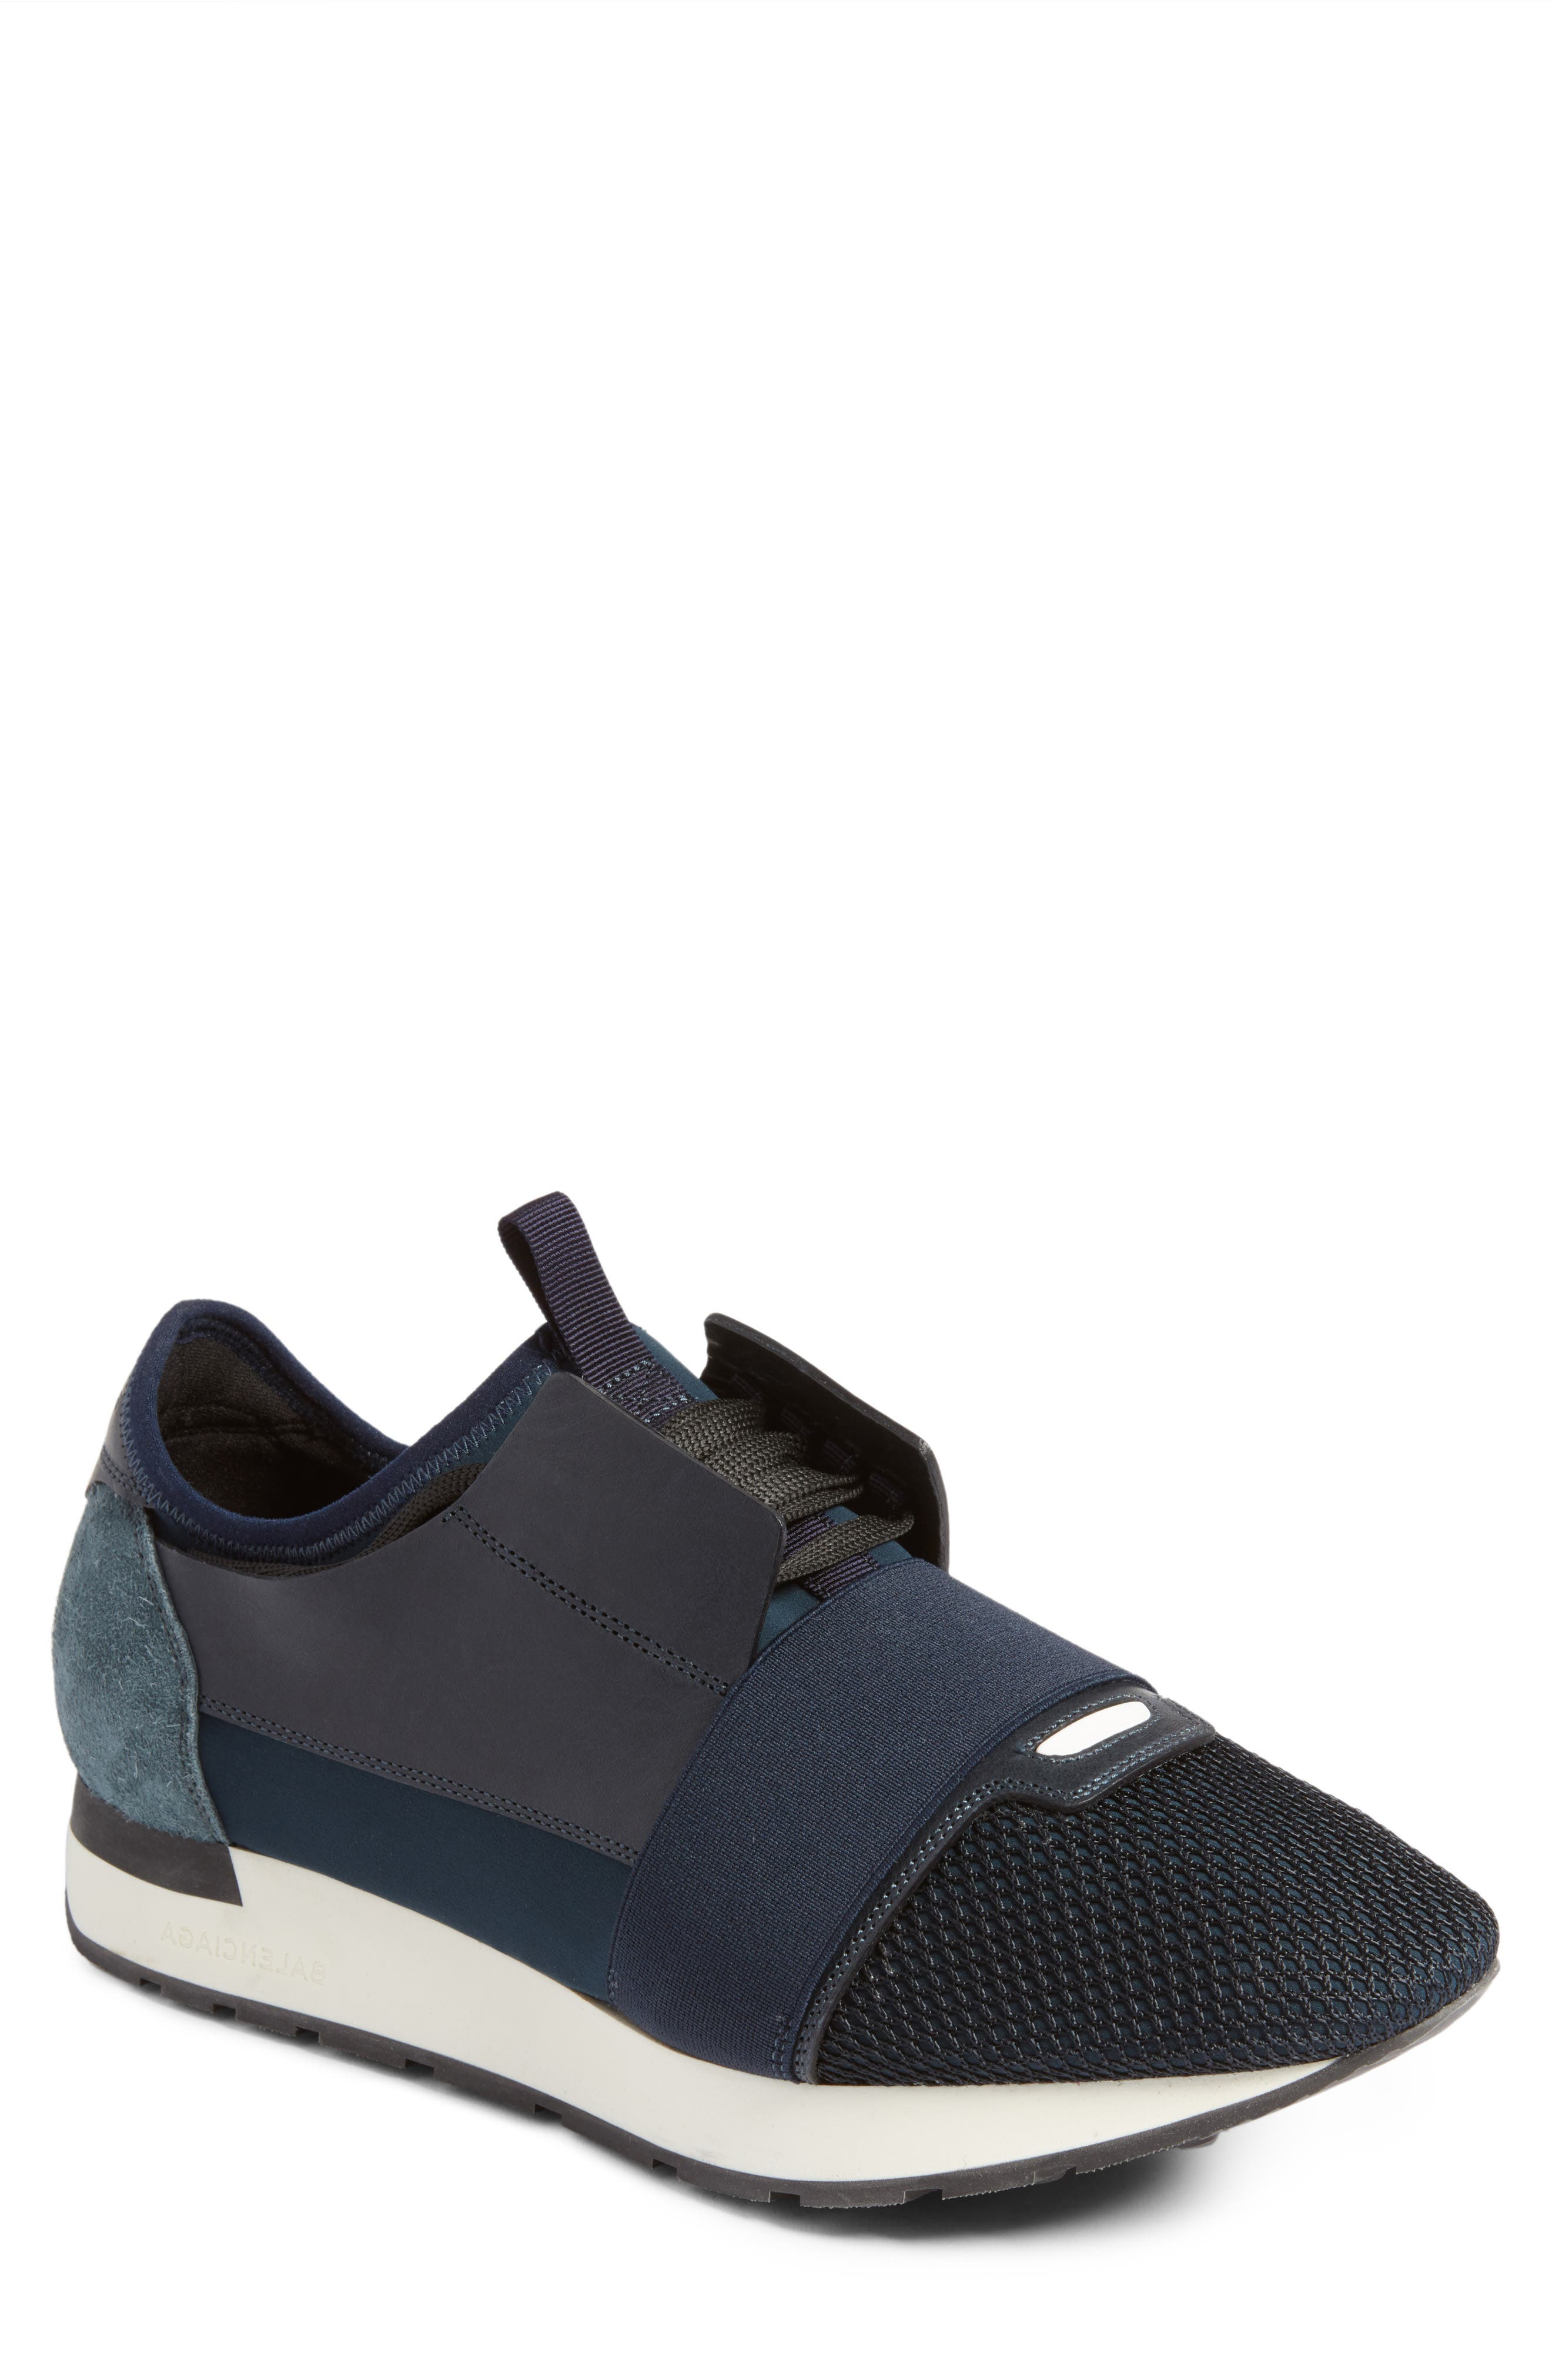 Balenciaga Race Runner Sneaker (Men)